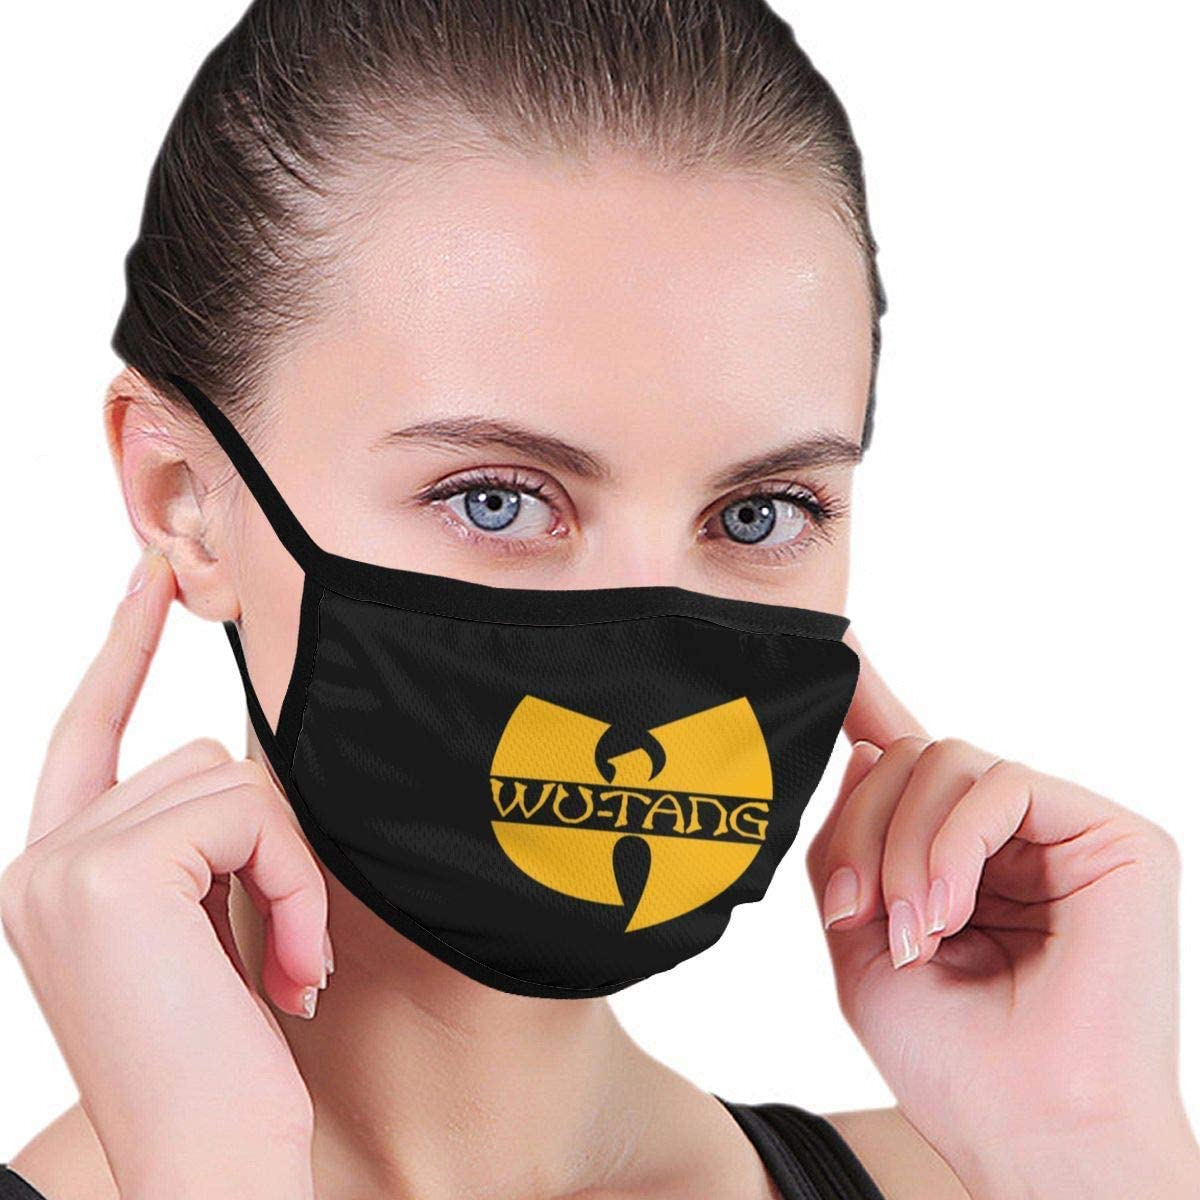 TOVIHUA WuTang Dustproof Face UV Protective, Multi Layers Cover, Washable, Reusable Cotton Face Coves